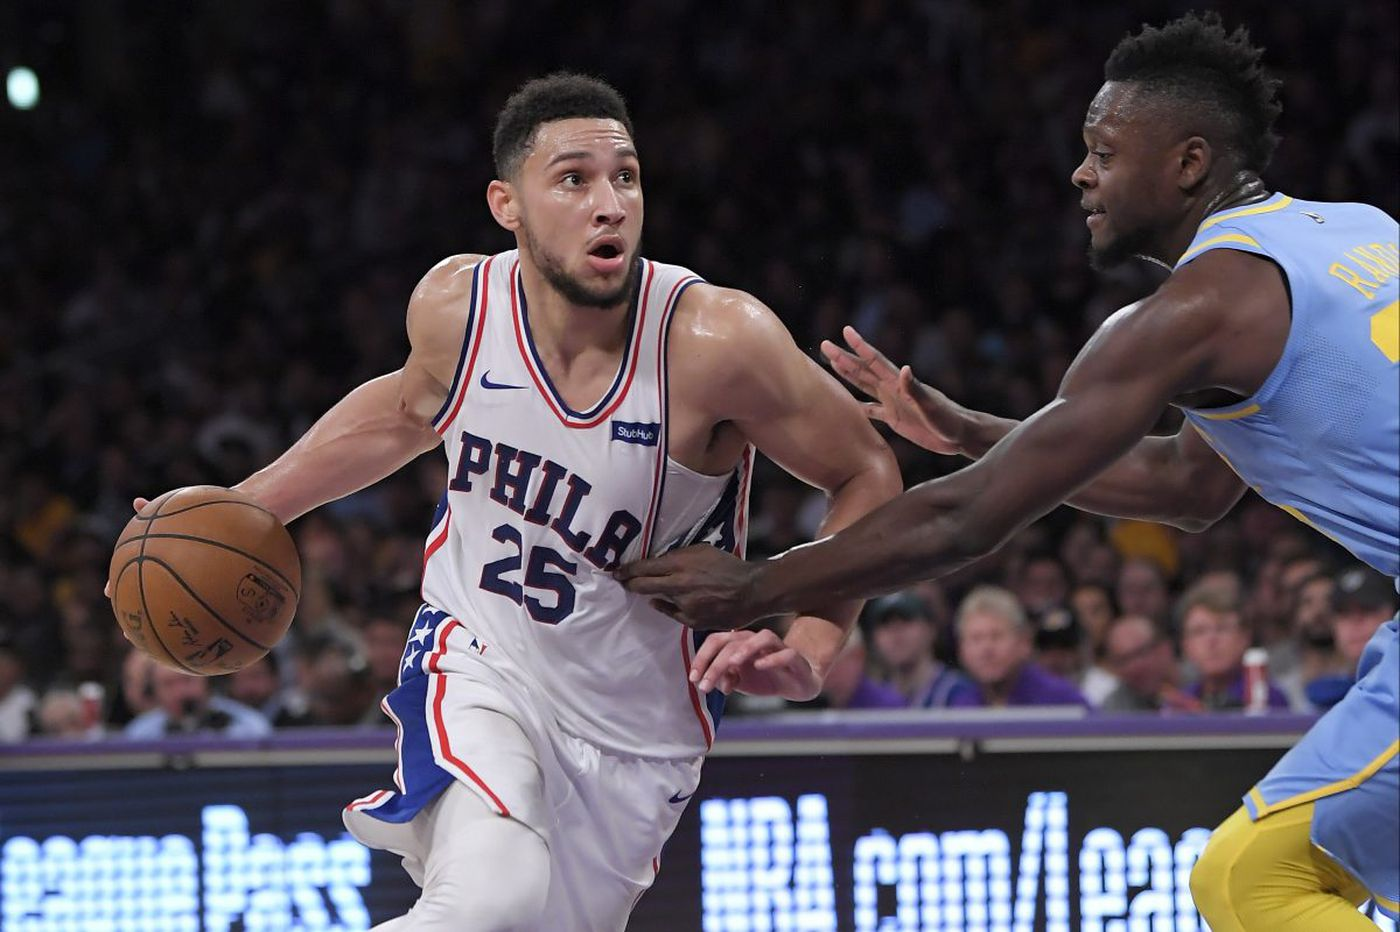 Joel Embiid is the Sixers' star, but Ben Simmons can change the NBA with his crusade | Mike Sielski